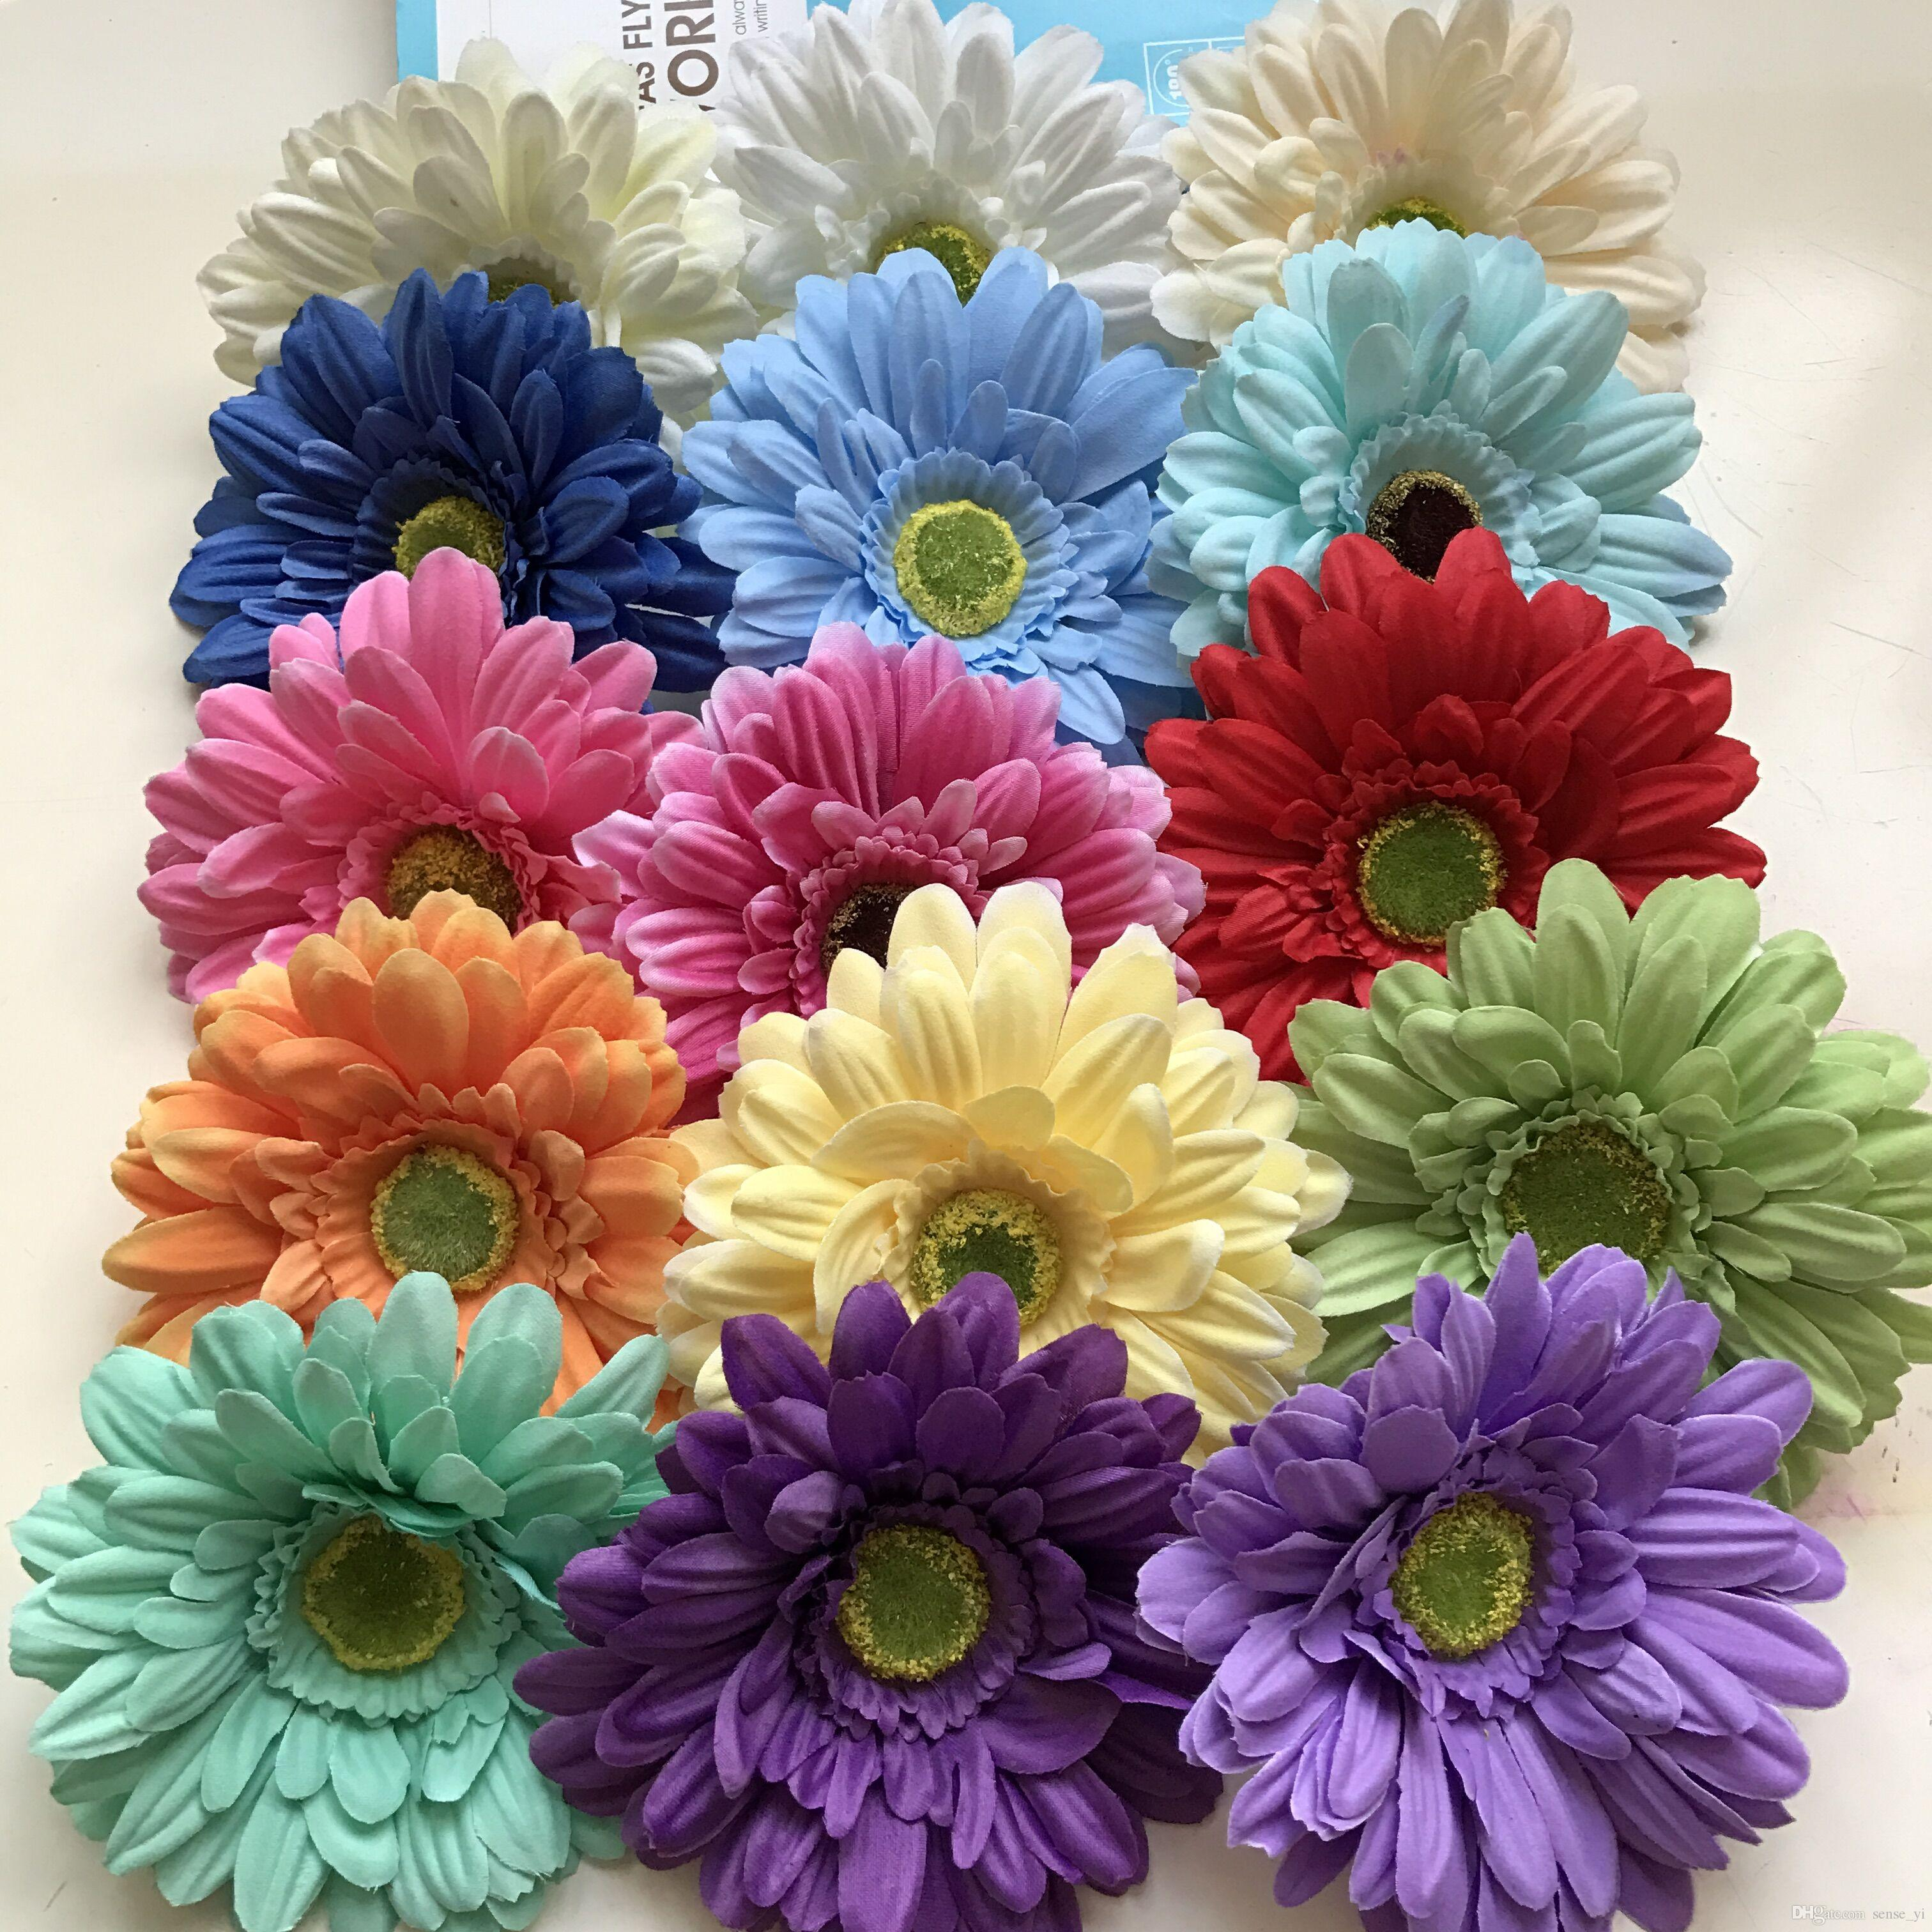 Silk daisy artificial flowers for wedding home decoration 13cm silk daisy artificial flowers for wedding home decoration 13cm chrysanthemum mariage flores decorative flowers plants silk flowers online with 6011piece izmirmasajfo